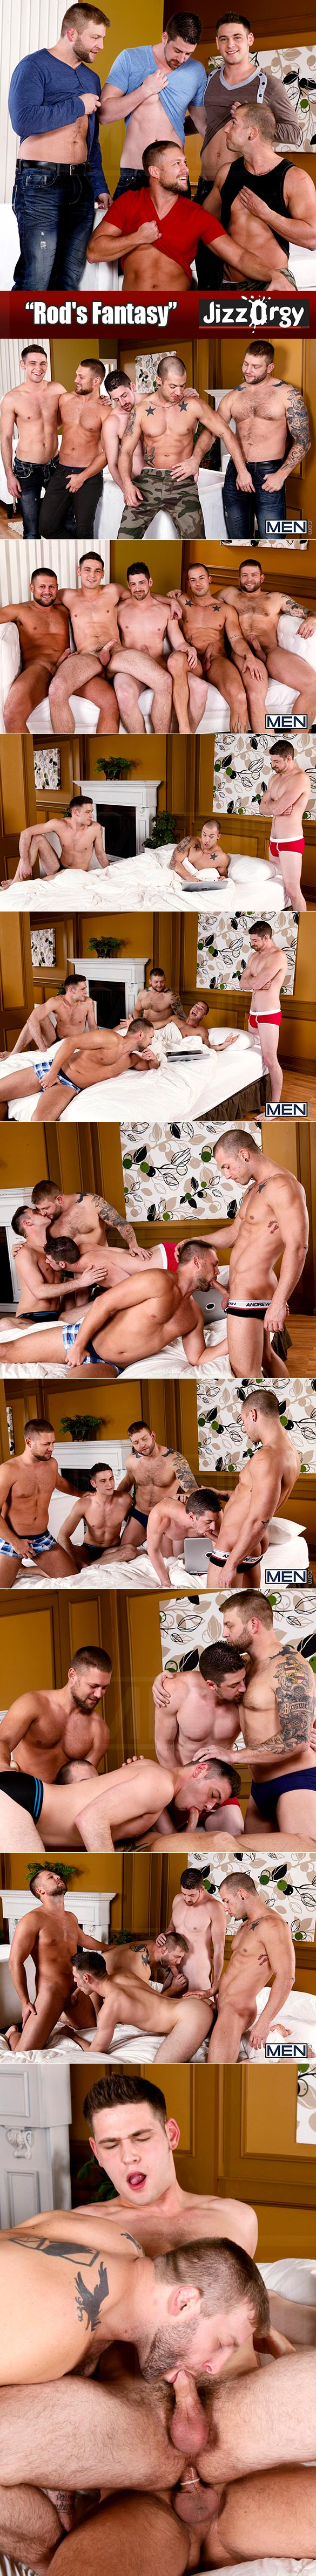 "Men.com: ""Rod's Fantasy"" with Rod Daily, Bobby Clark, Colby Jansen, Andrew Stark and Duncan Black"